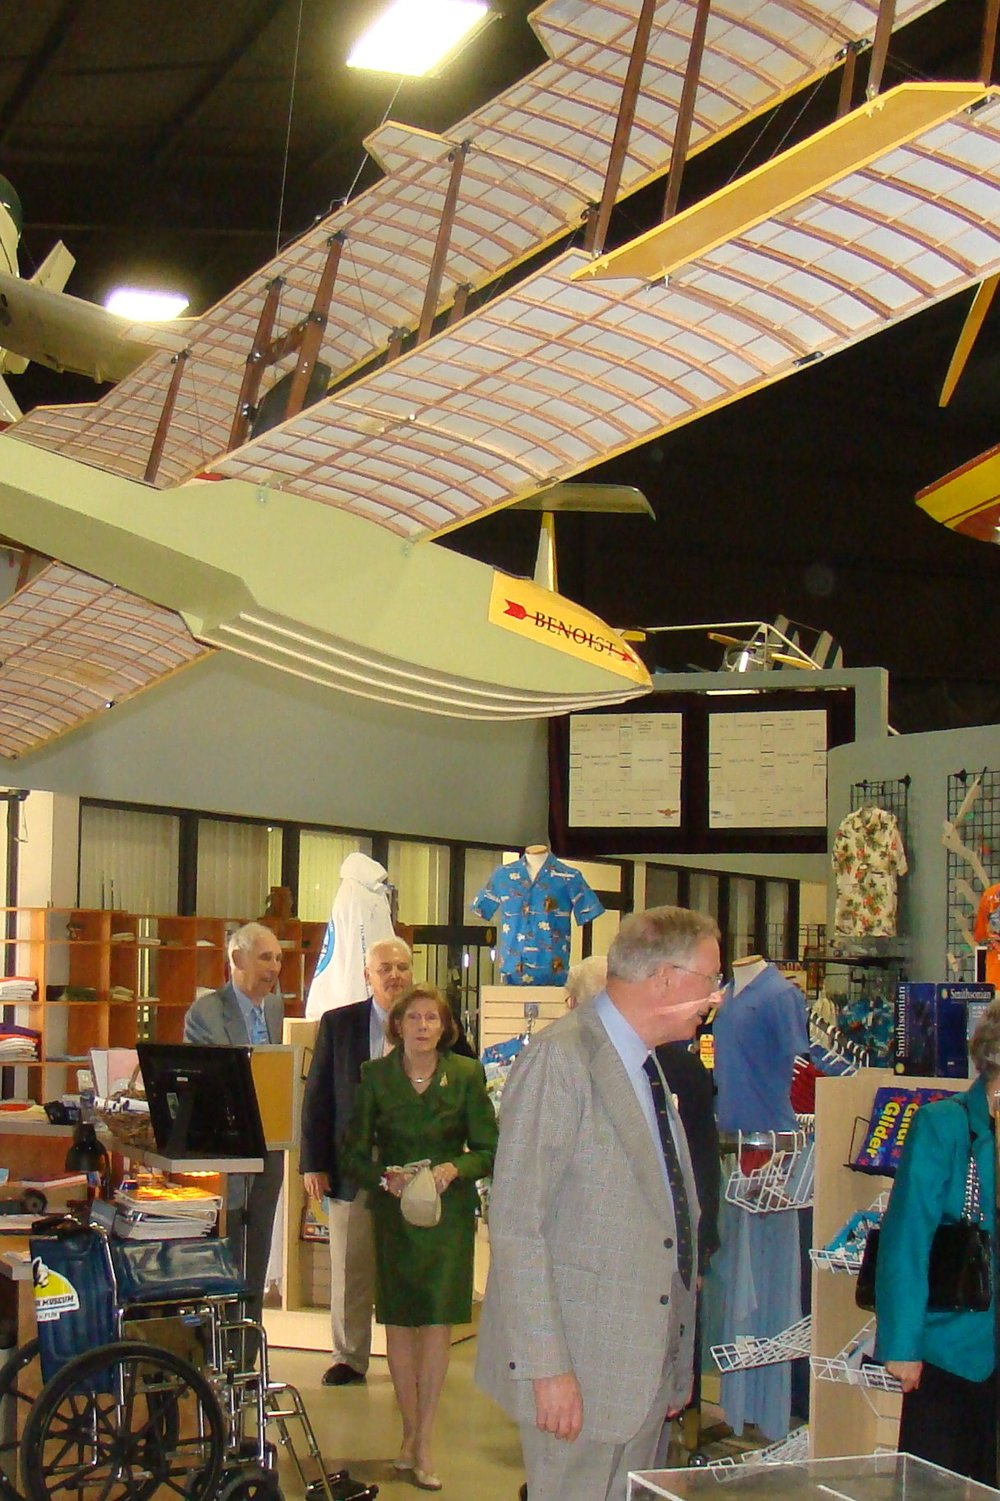 Florida Air Museum, Bill & Dottie Krusen entering, 28 Jan '12.JPG